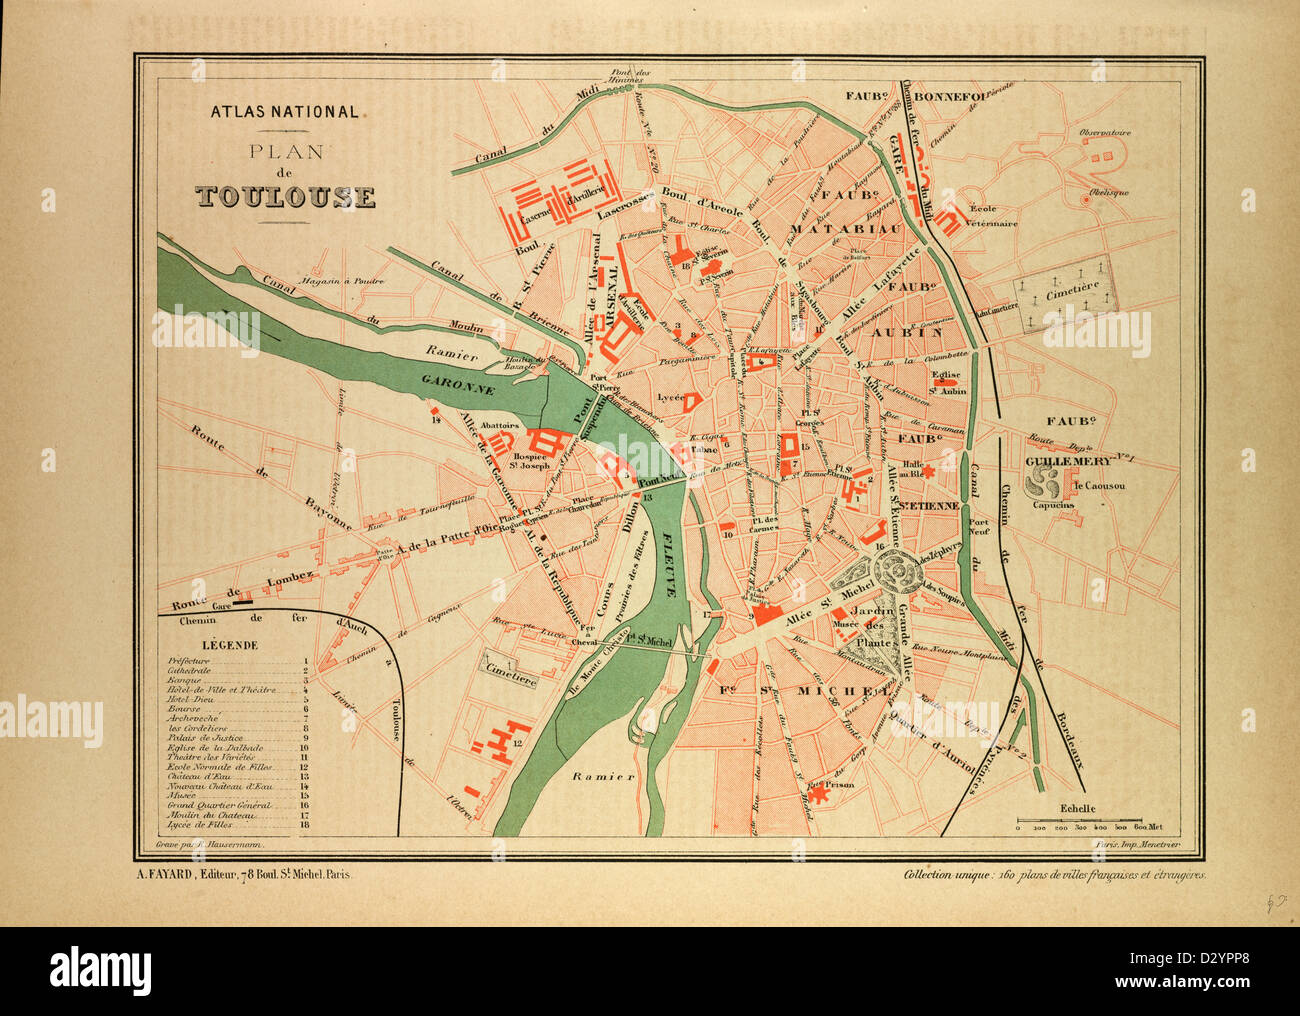 Map Of France Toulouse.Map Of Toulouse France Stock Photo 53470992 Alamy